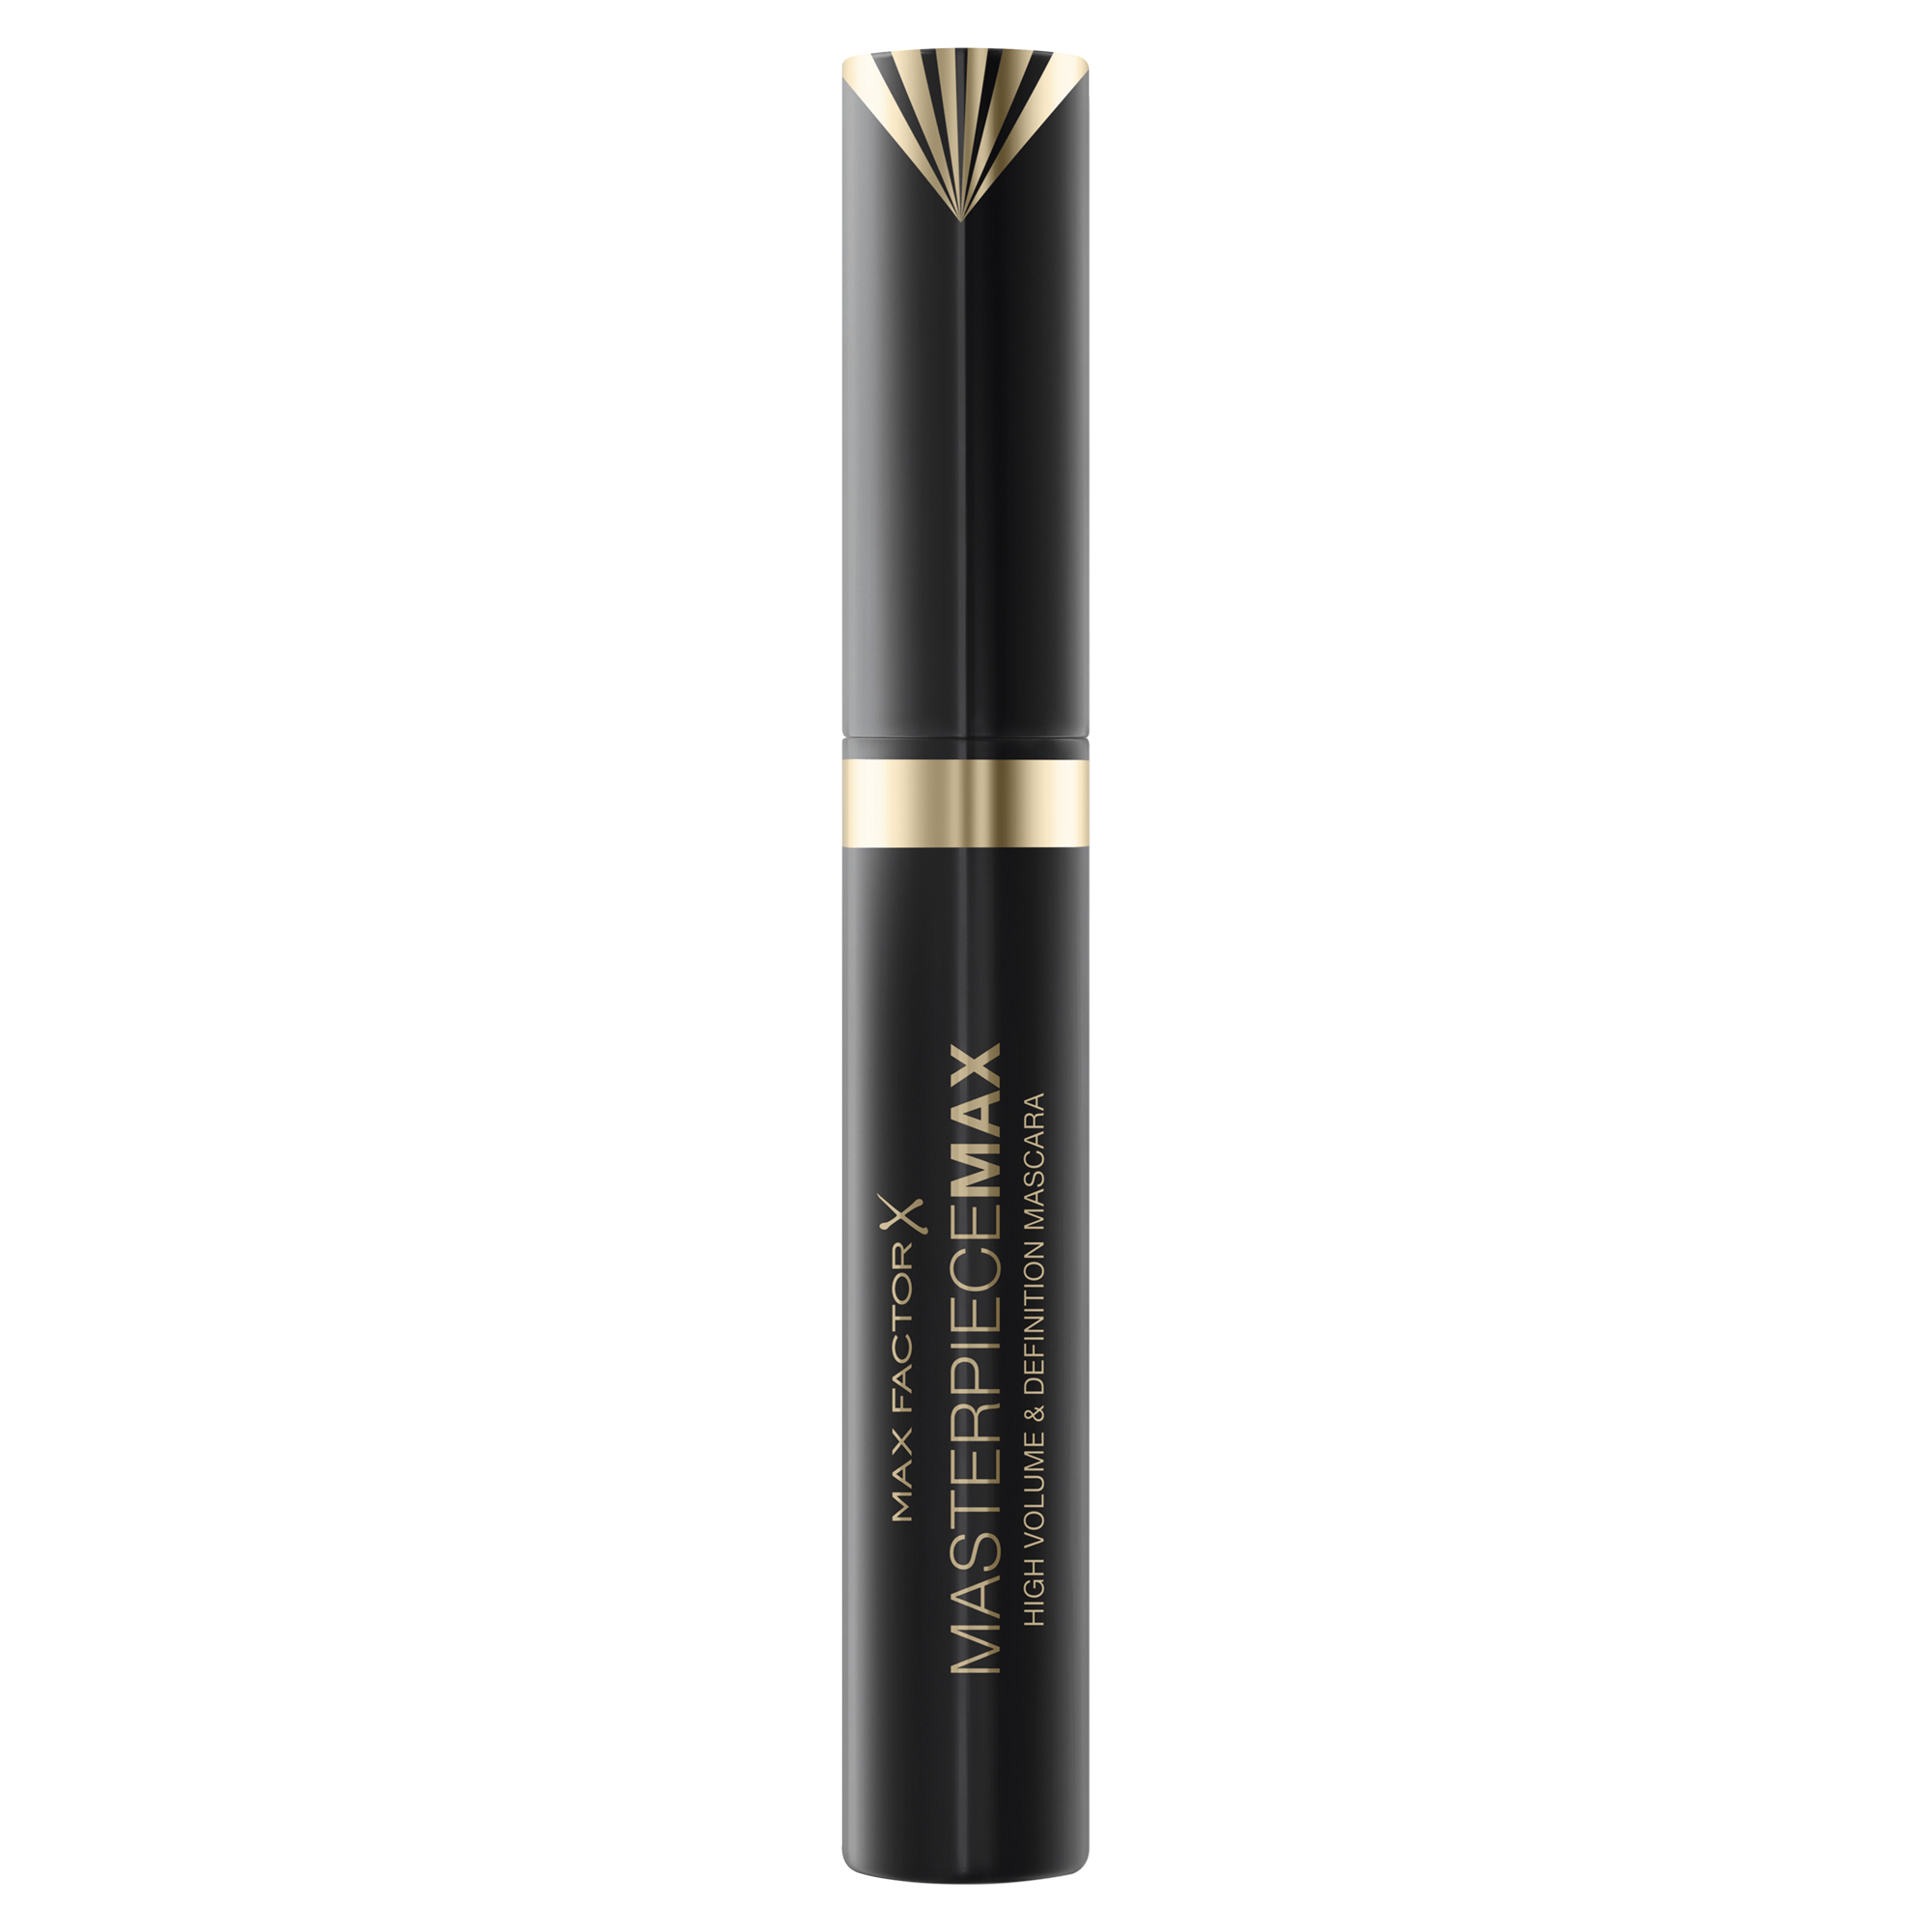 the newest products from max factor get your off coupon the mom shopping network